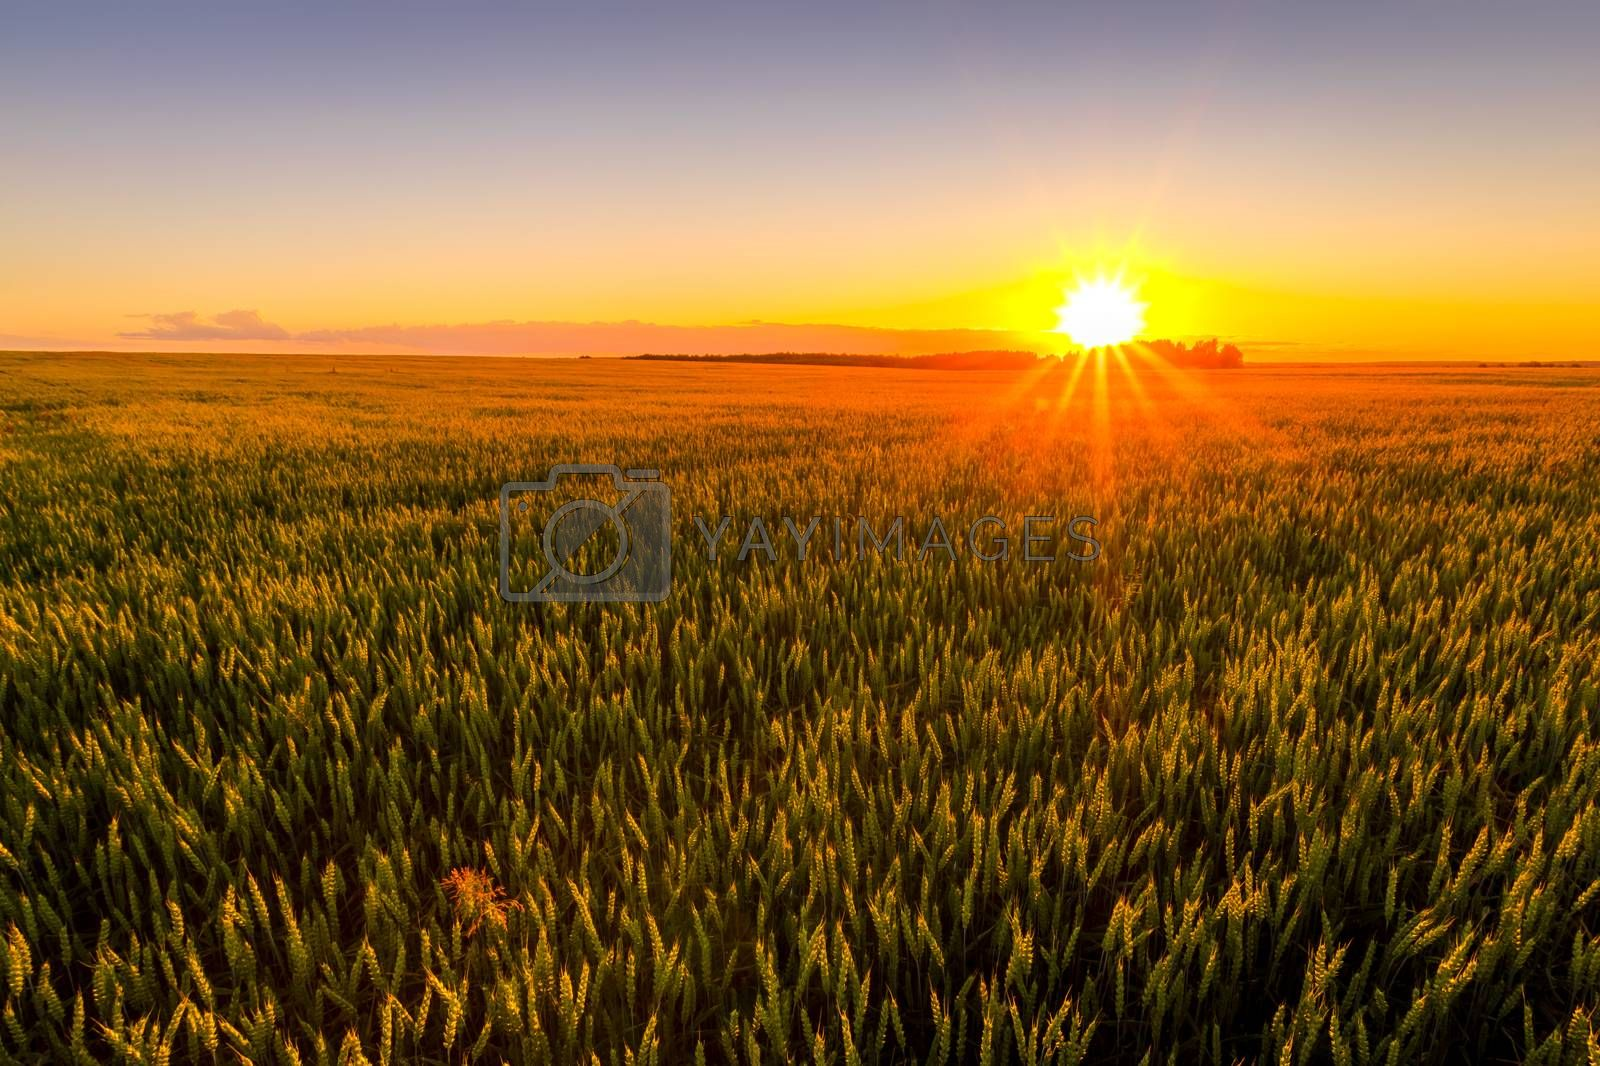 Sunset or sunrise in an agricultural field with ears of young green rye and a path through it on a sunny day. The rays of the sun pushing through the clouds. Landscape.